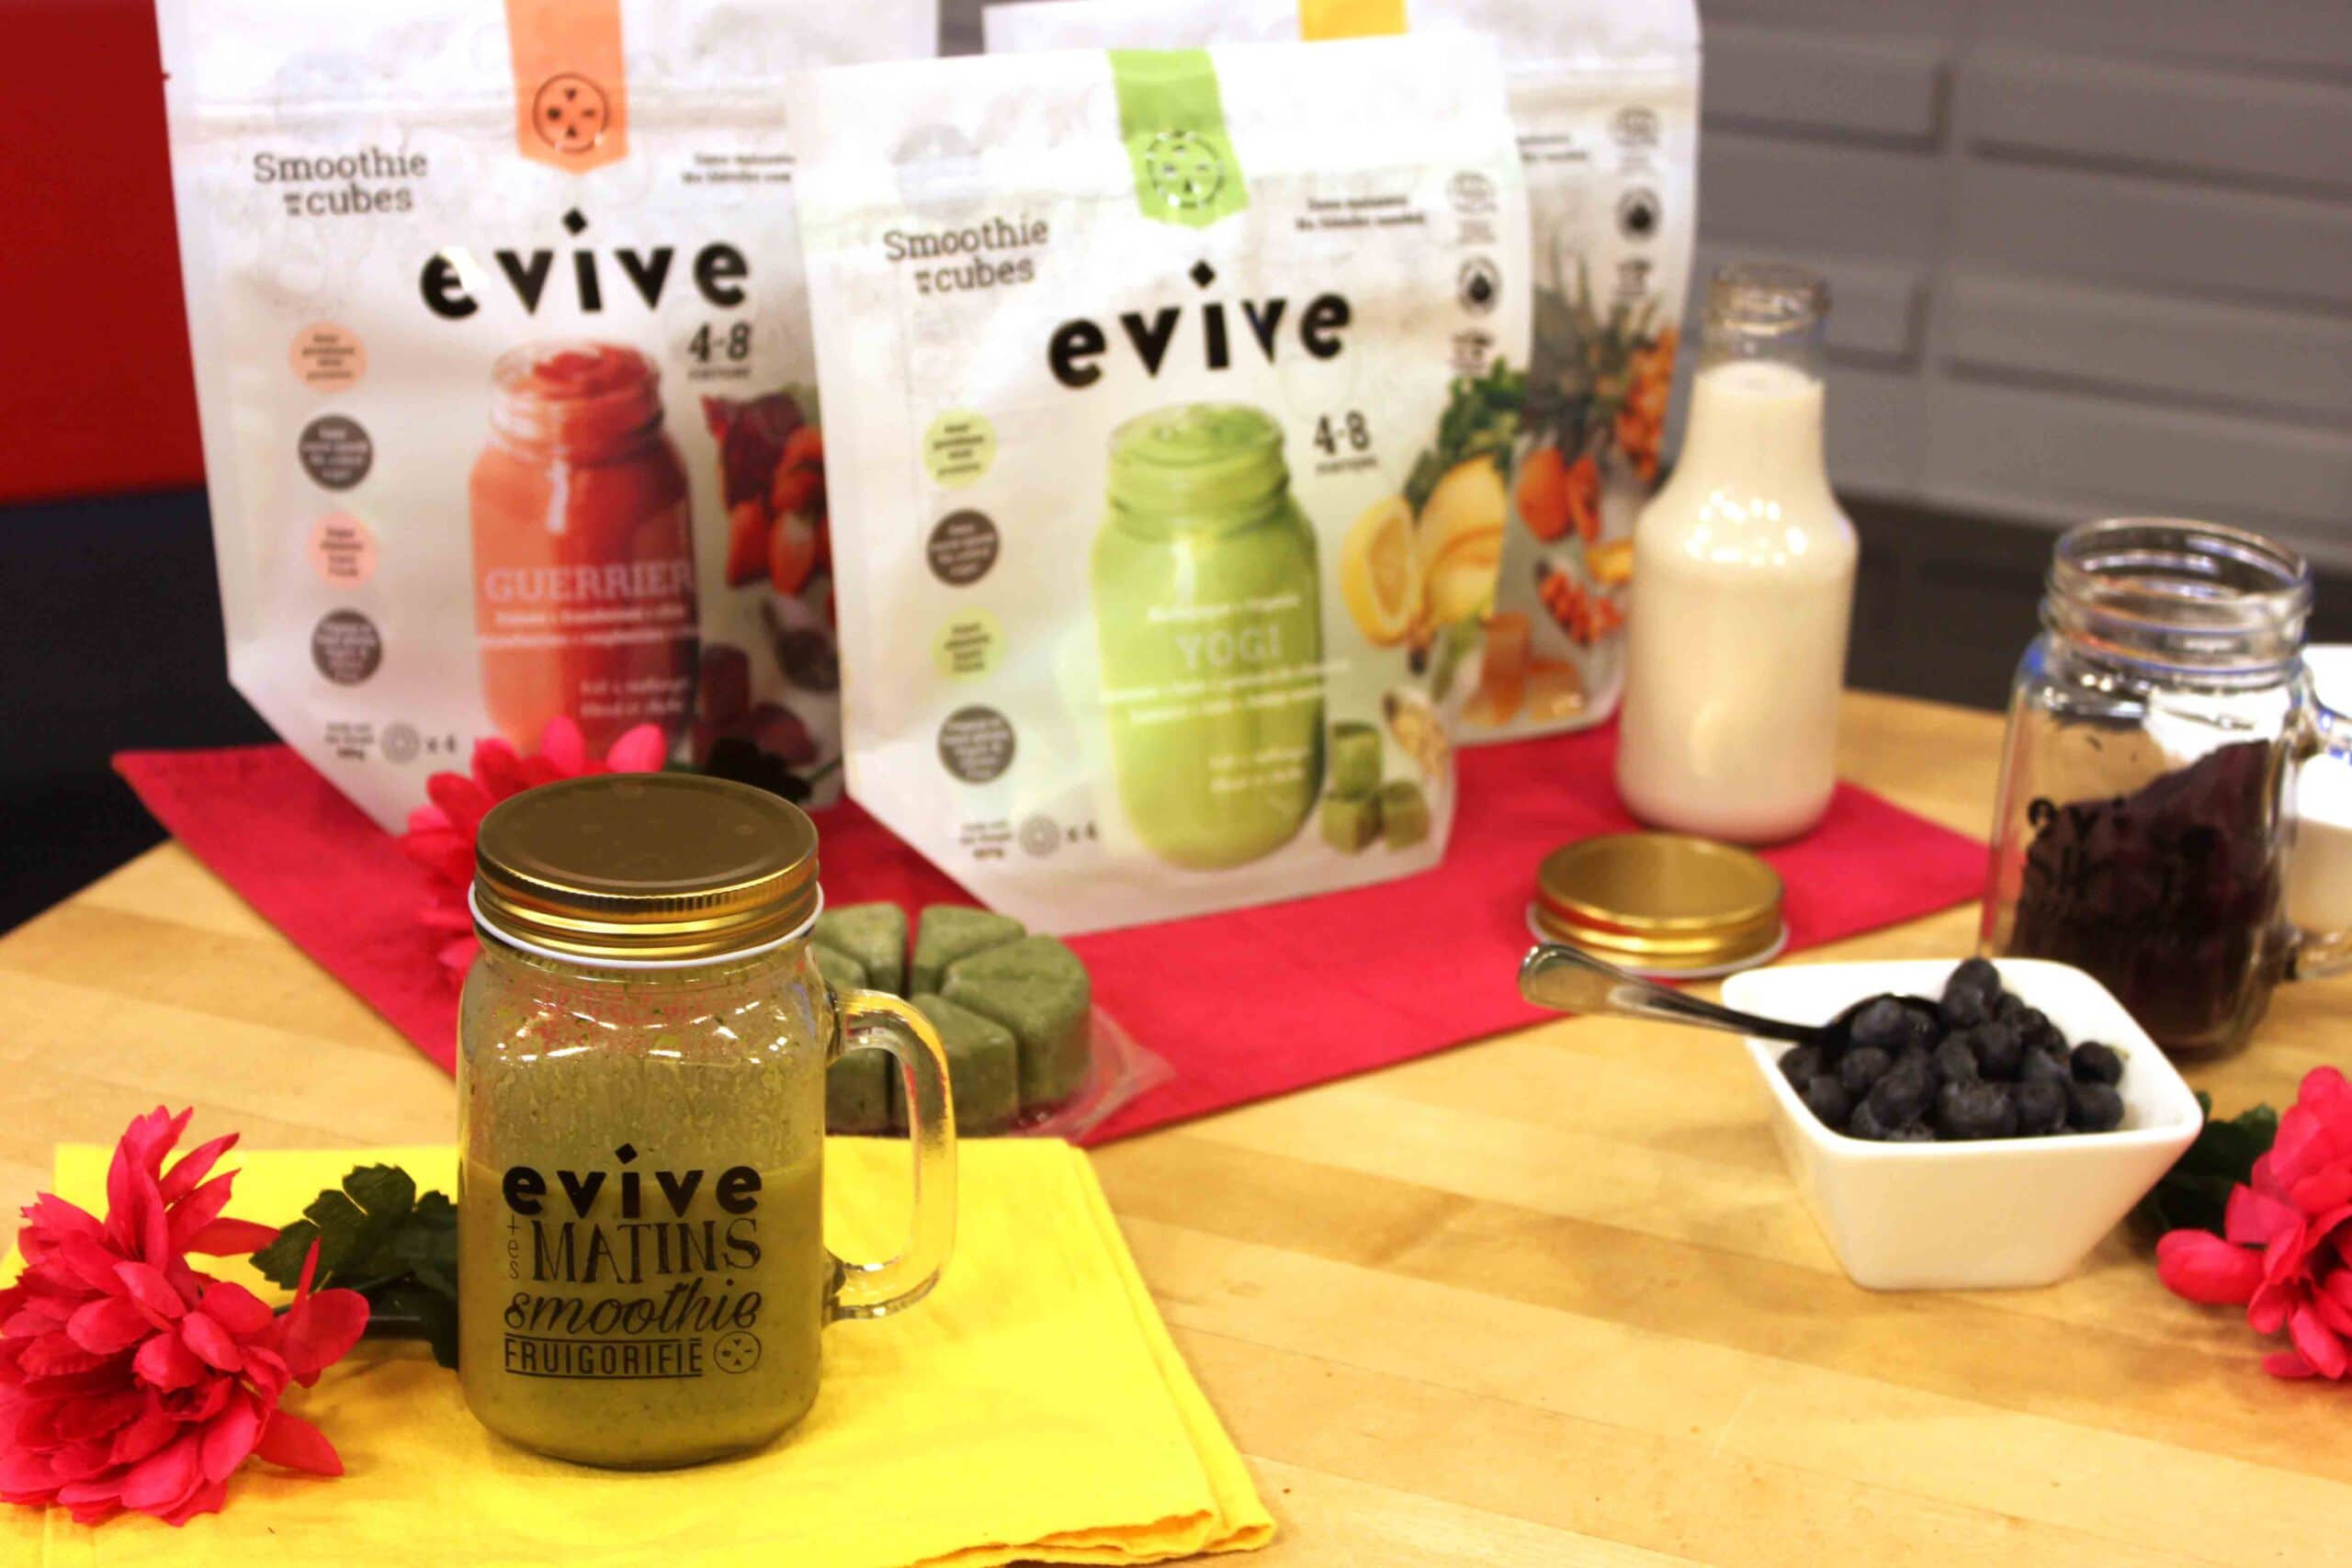 Building a Beautiful Smoothie Bowl on CH Morning Live #evivesmoothie